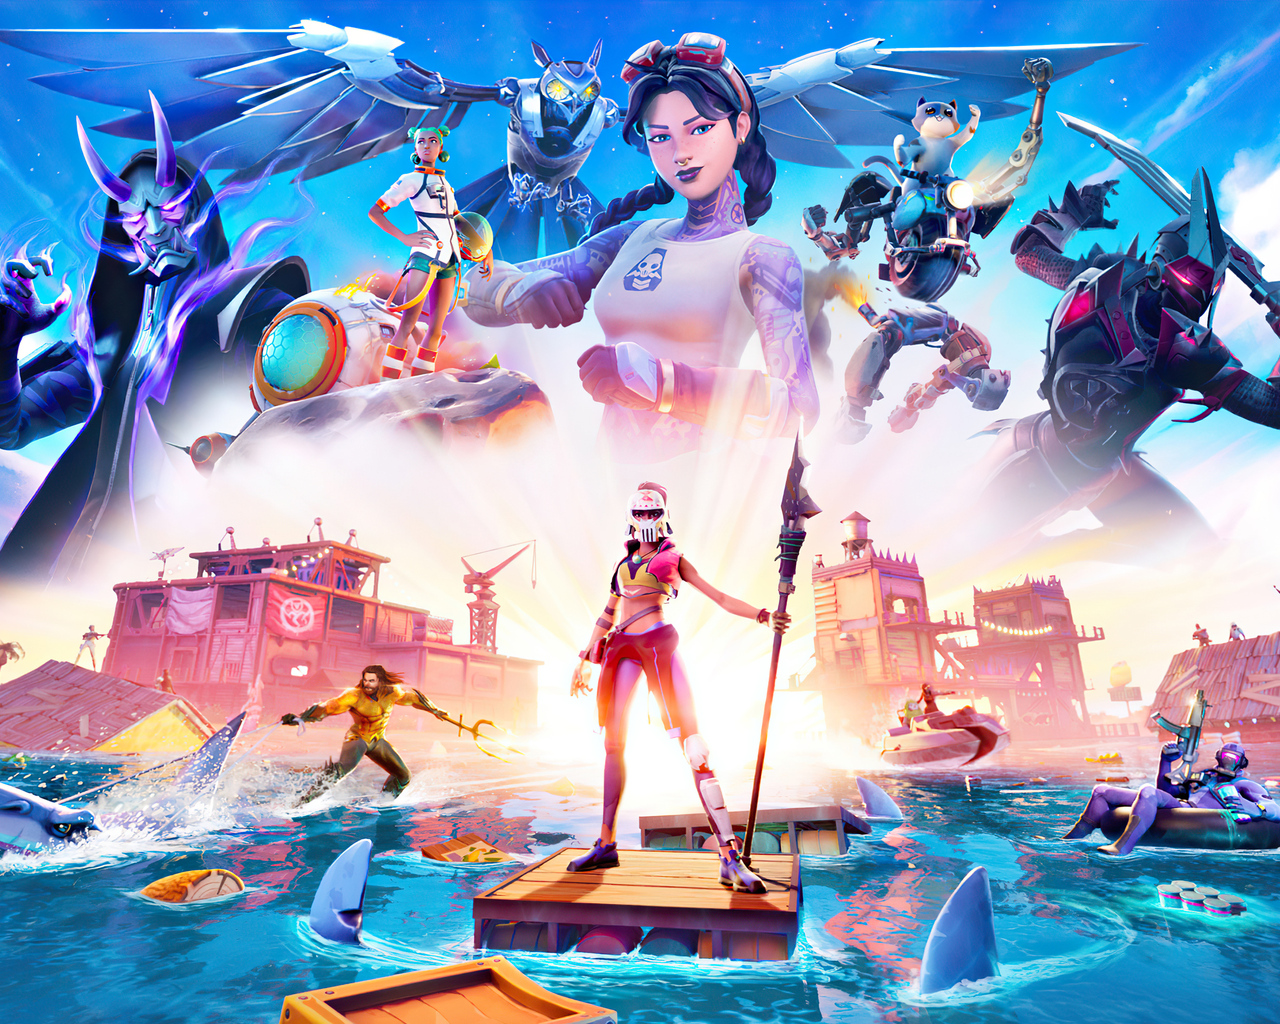 1280x1024 Fortnite Chapter 2 Season 3 1280x1024 Resolution Hd 4k Wallpapers Images Backgrounds Photos And Pictures